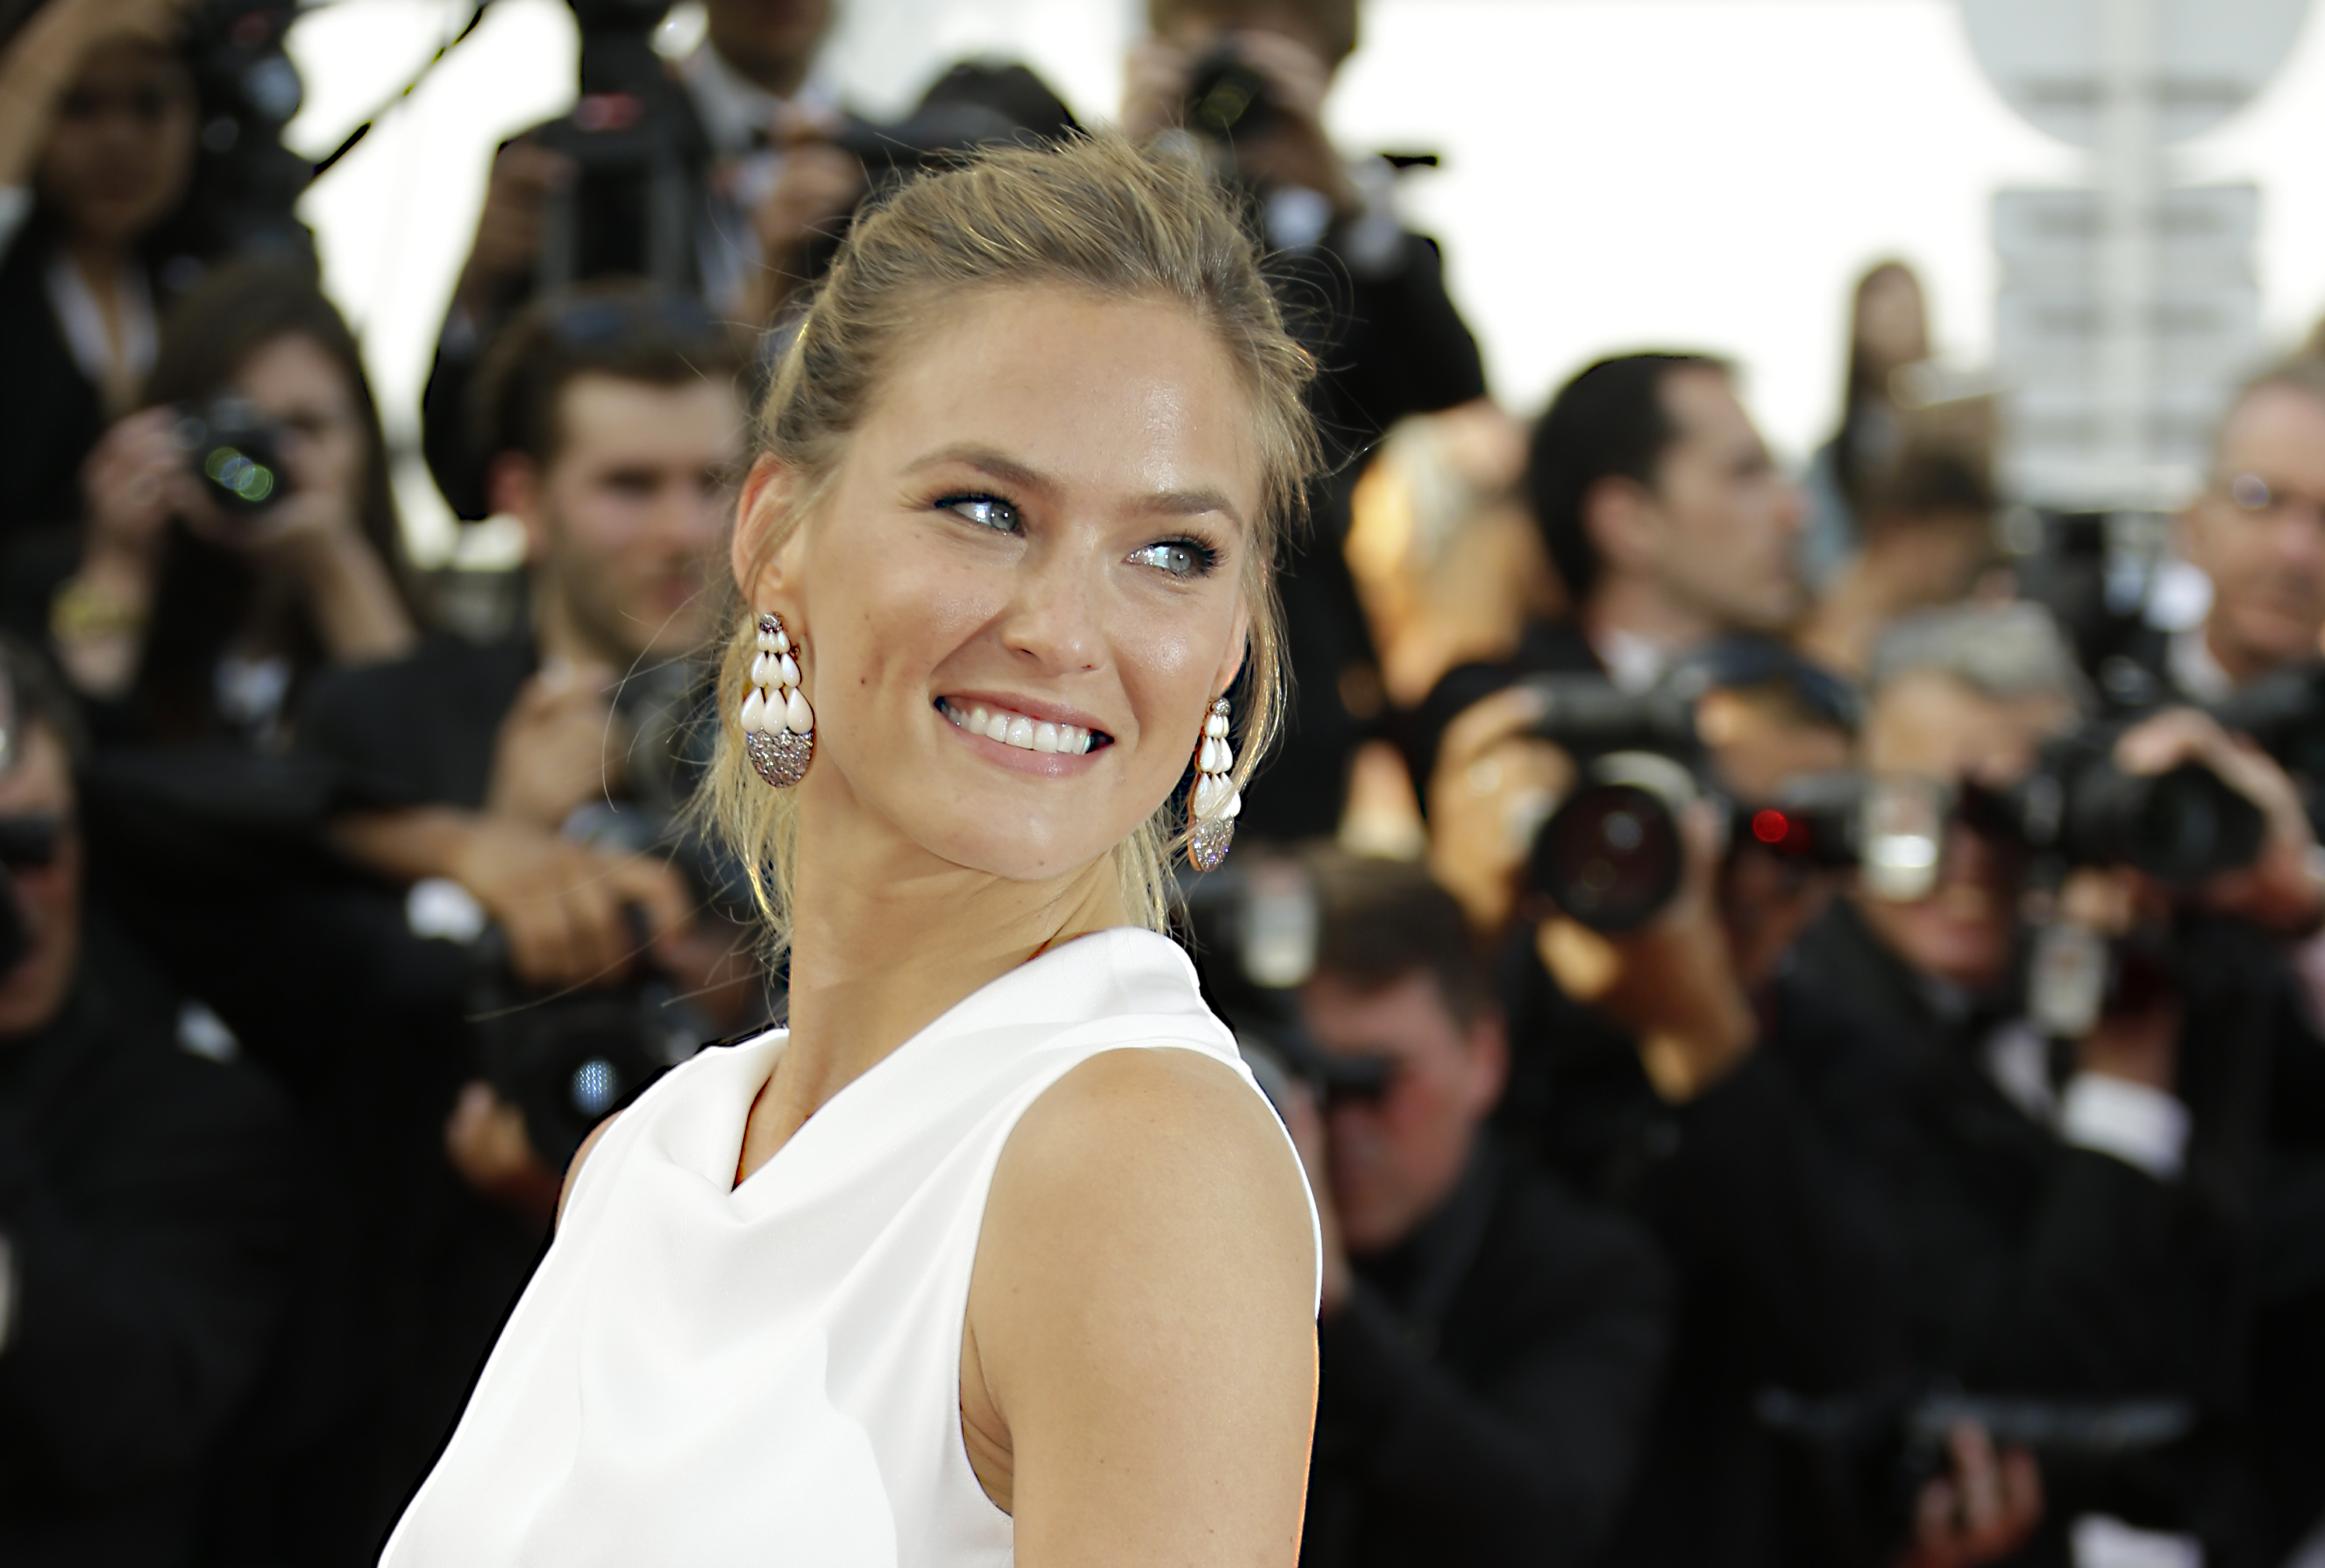 In this May 13, 2015 file photo, Bar Refaeli arrives for the opening ceremony and the screening of the film La Tete Haute at the 68th international film festival, Cannes, southern France